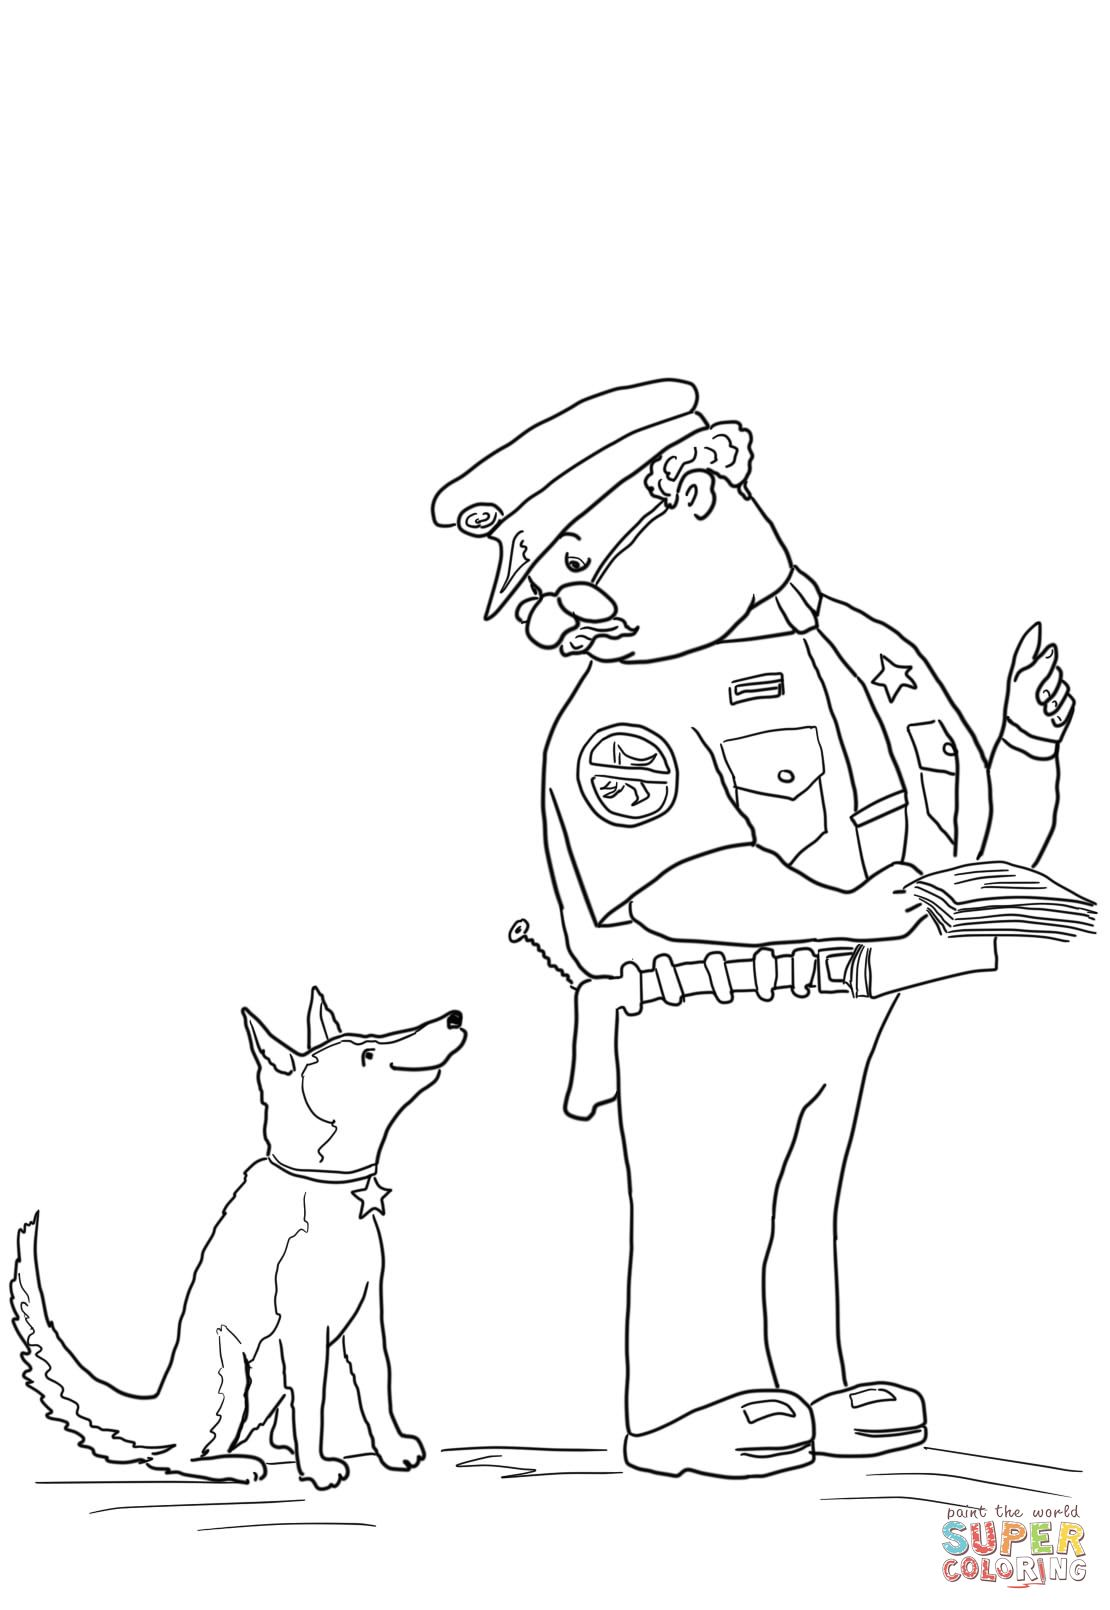 officer buckle and gloria coloring sheets officer buckle and gloria taking a bow coloring page gloria sheets coloring officer buckle and